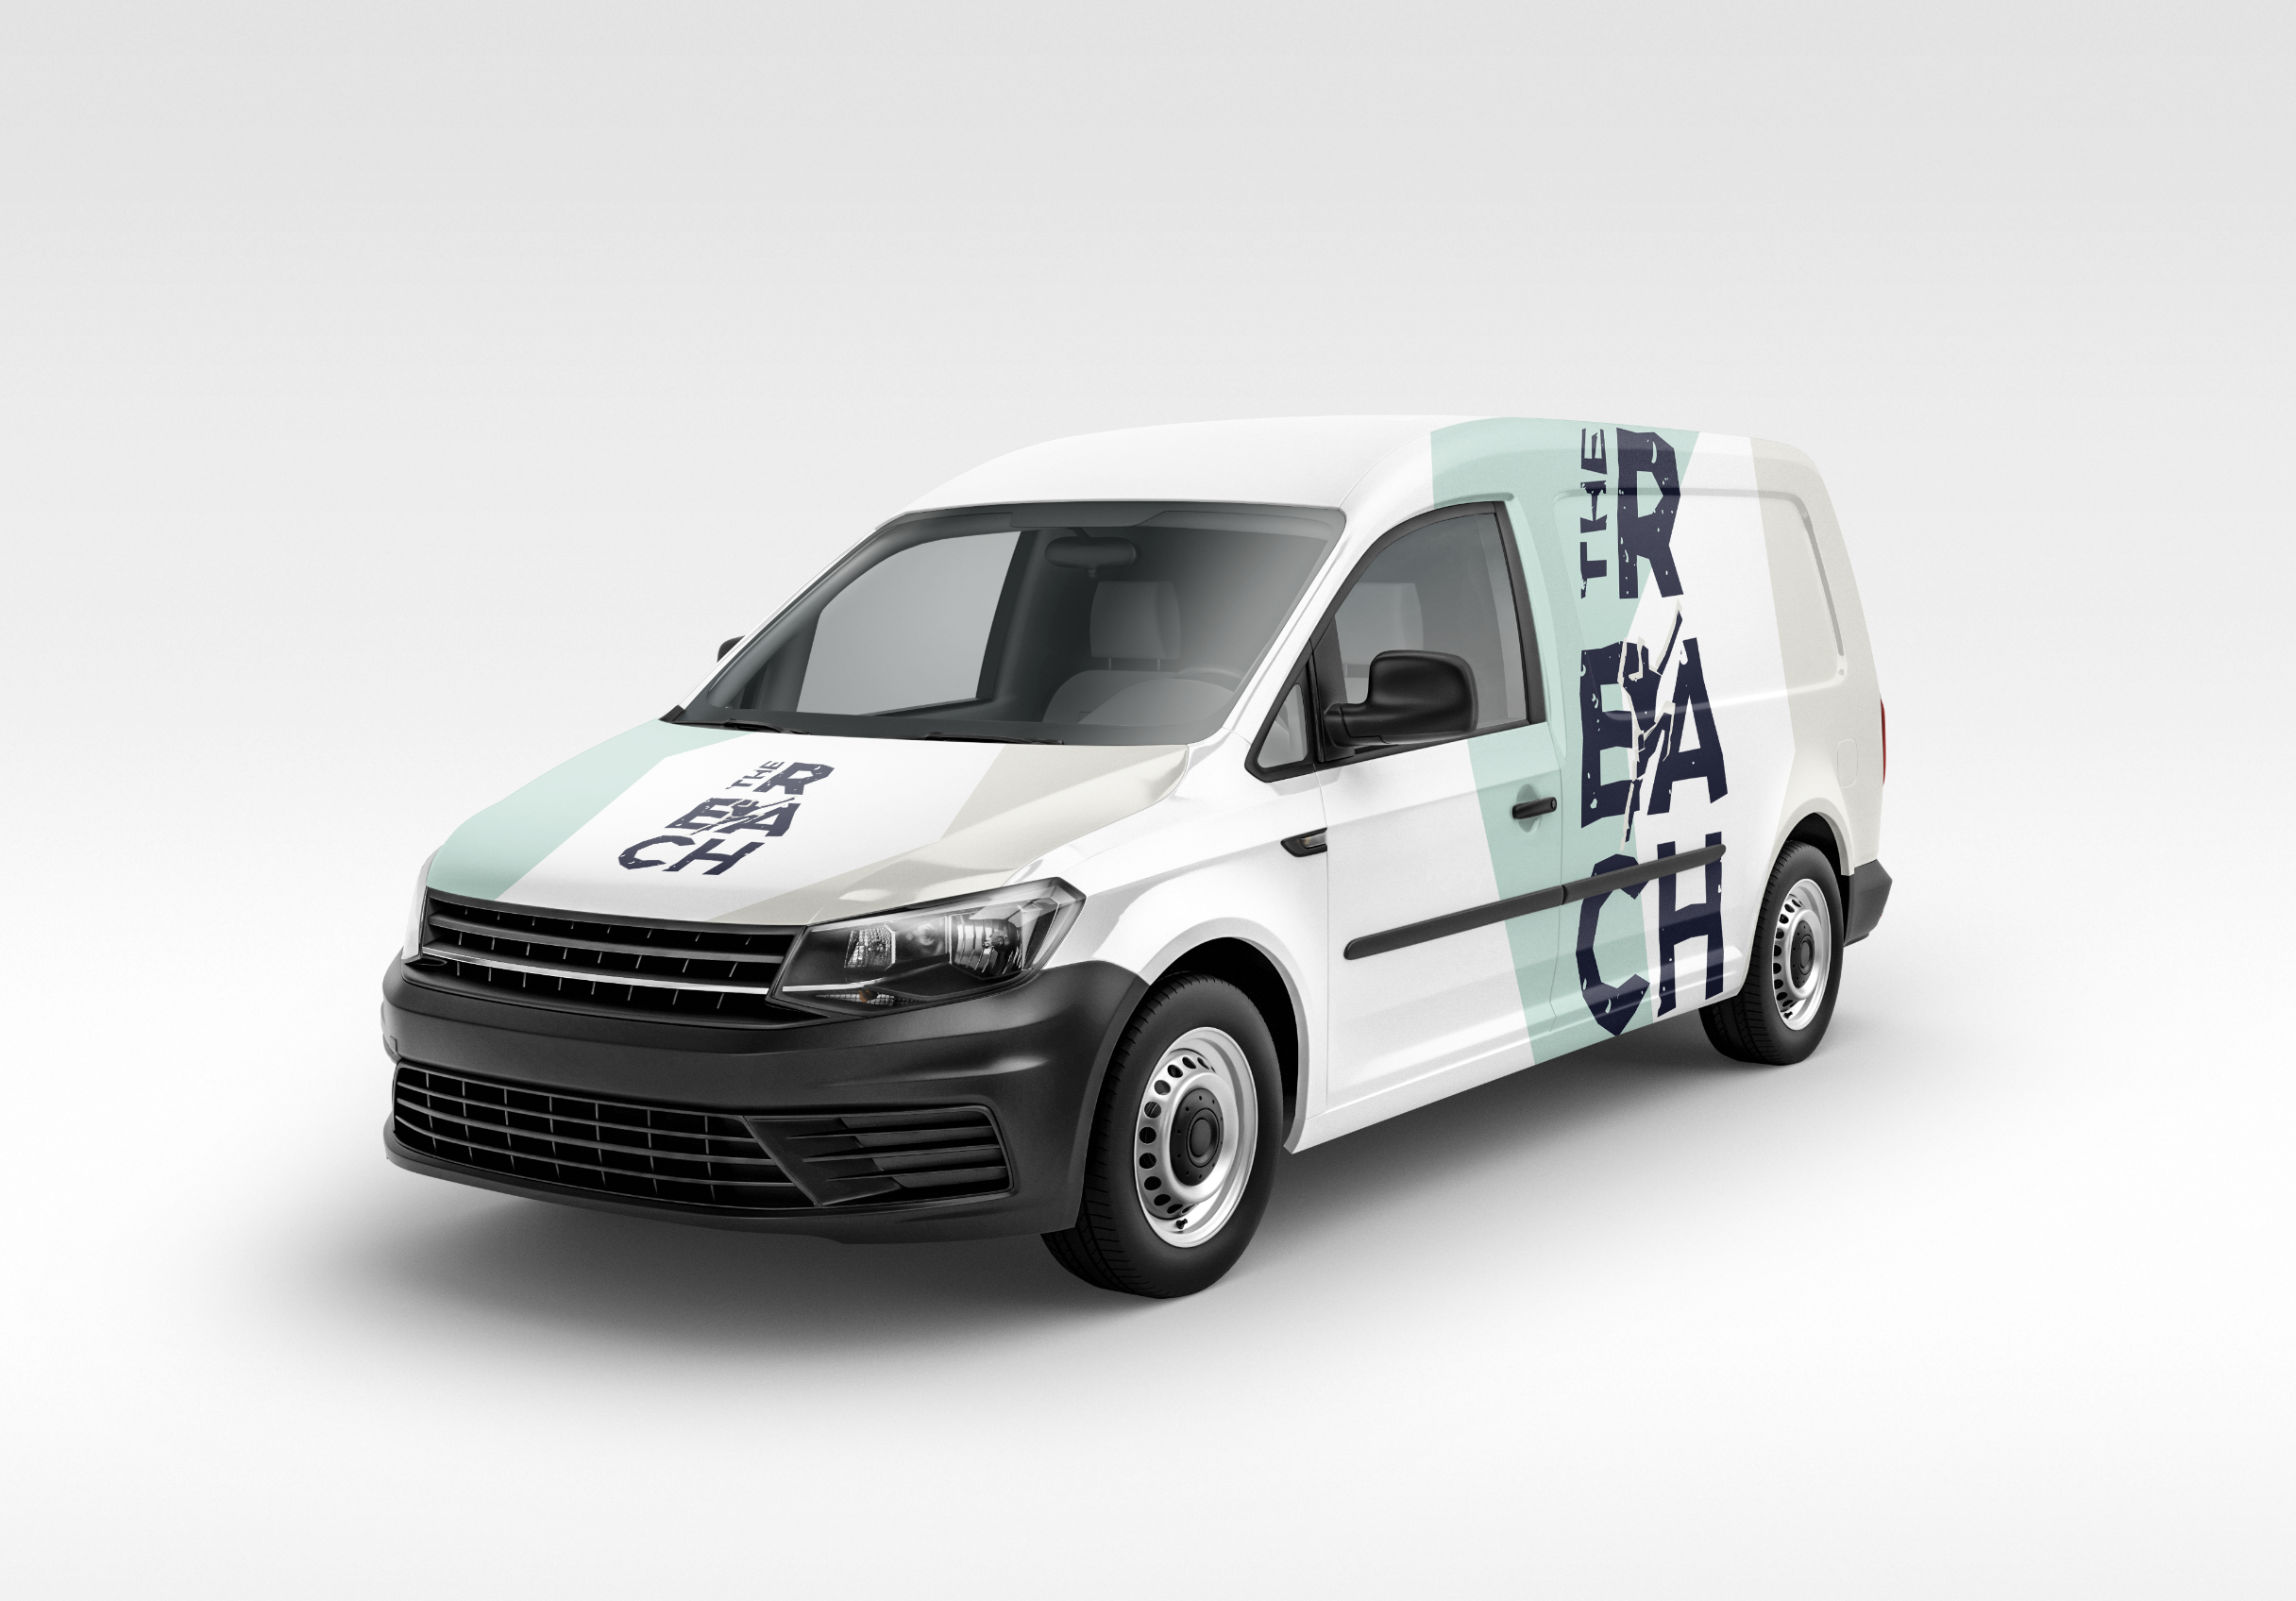 The Reach Branded Vehicle